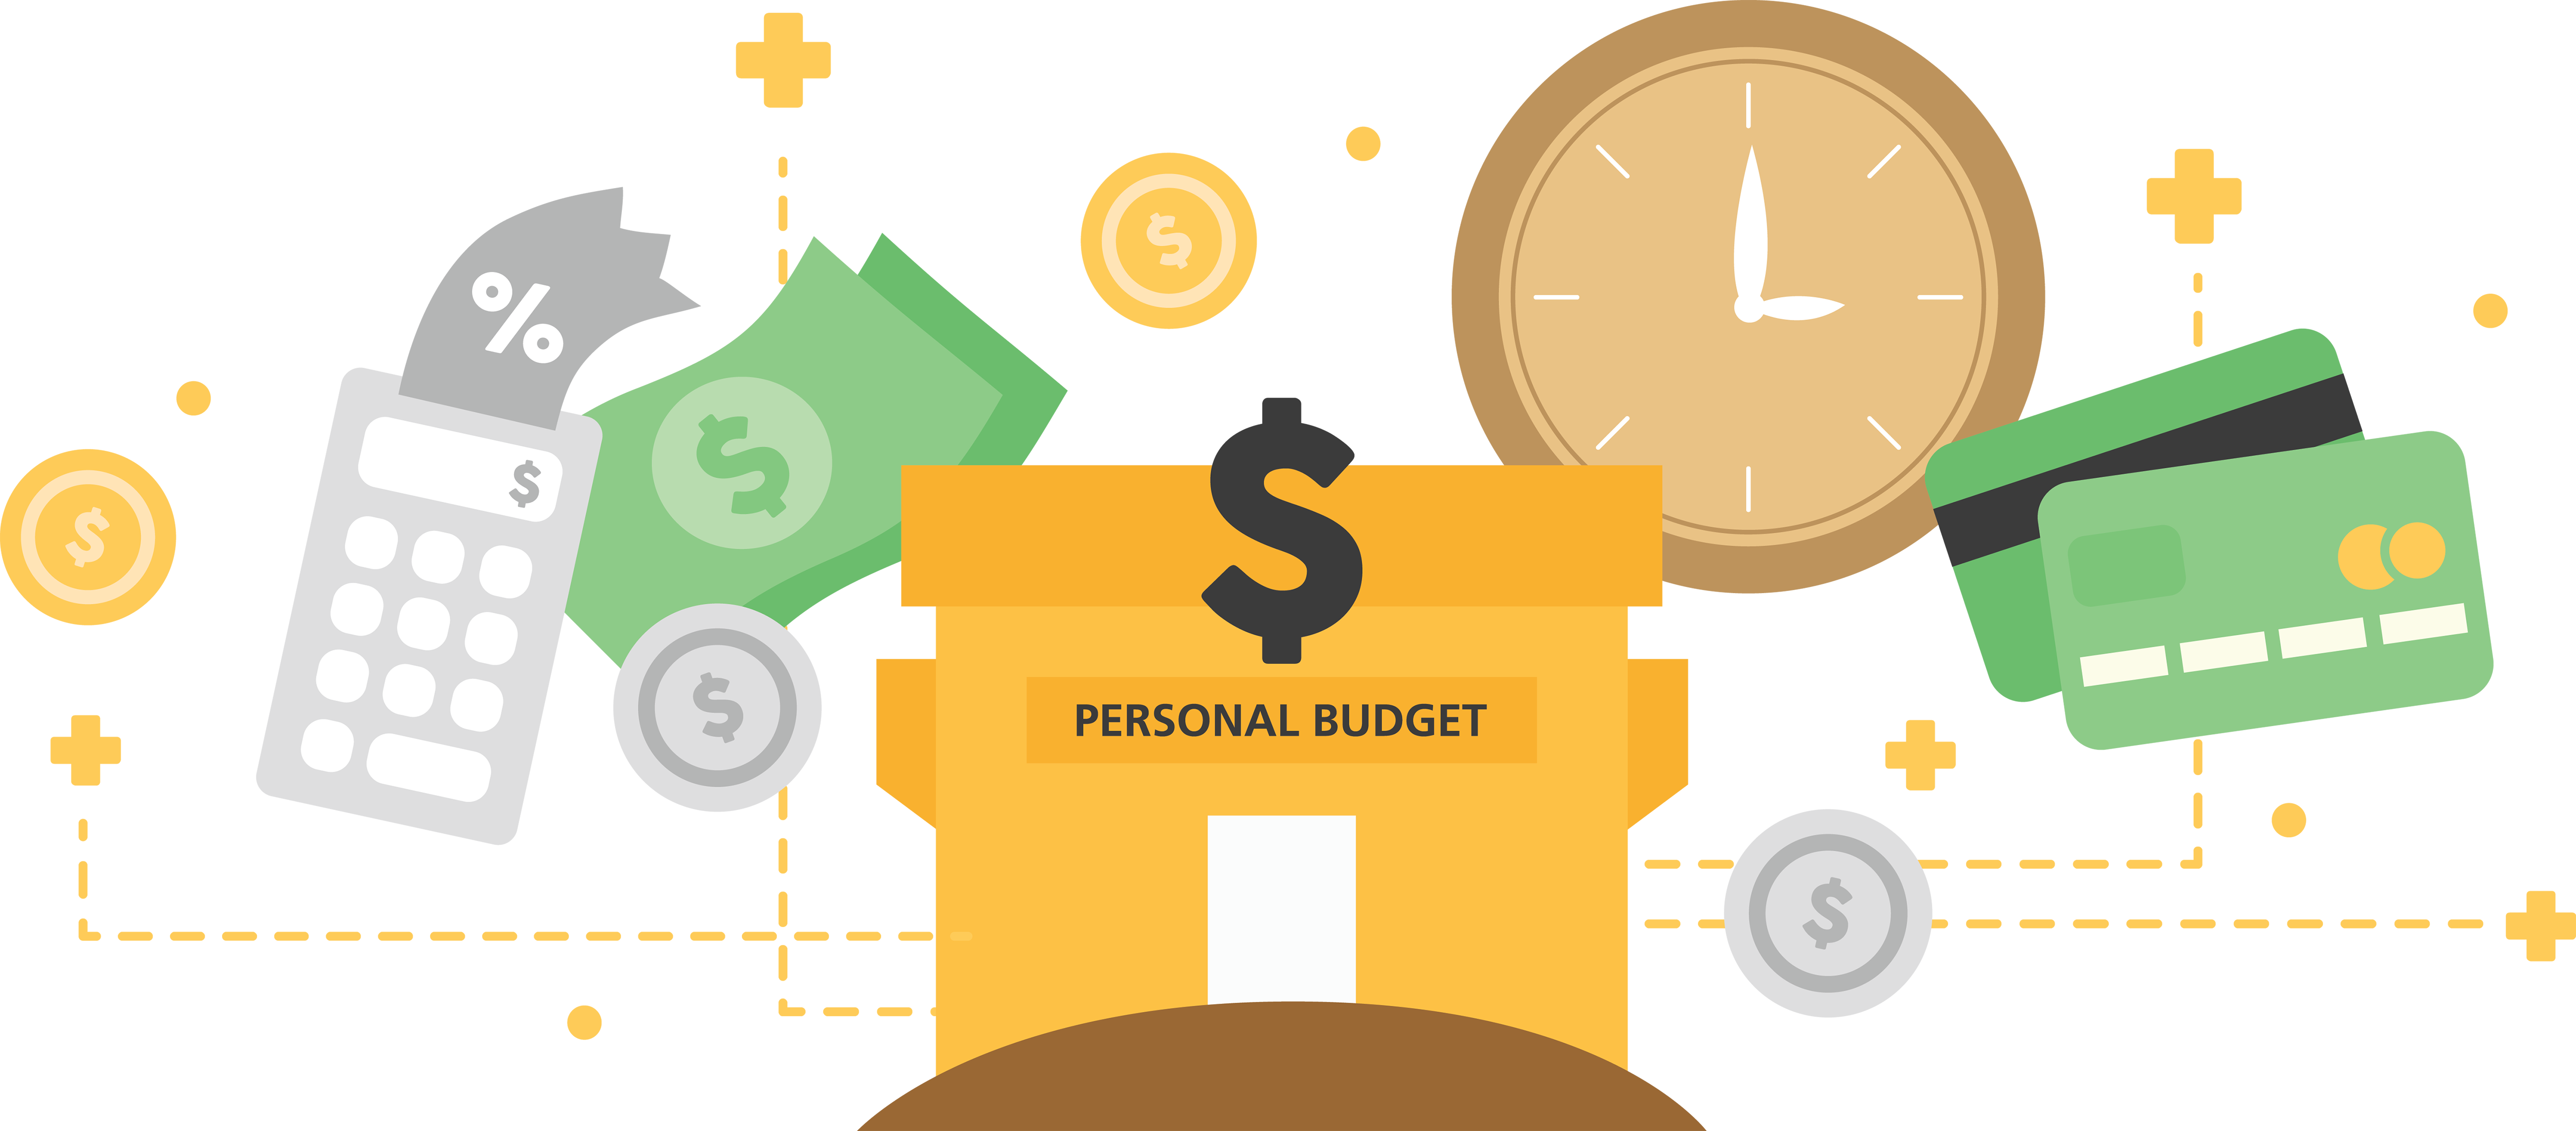 image stock How to live on. Budget clipart budget process